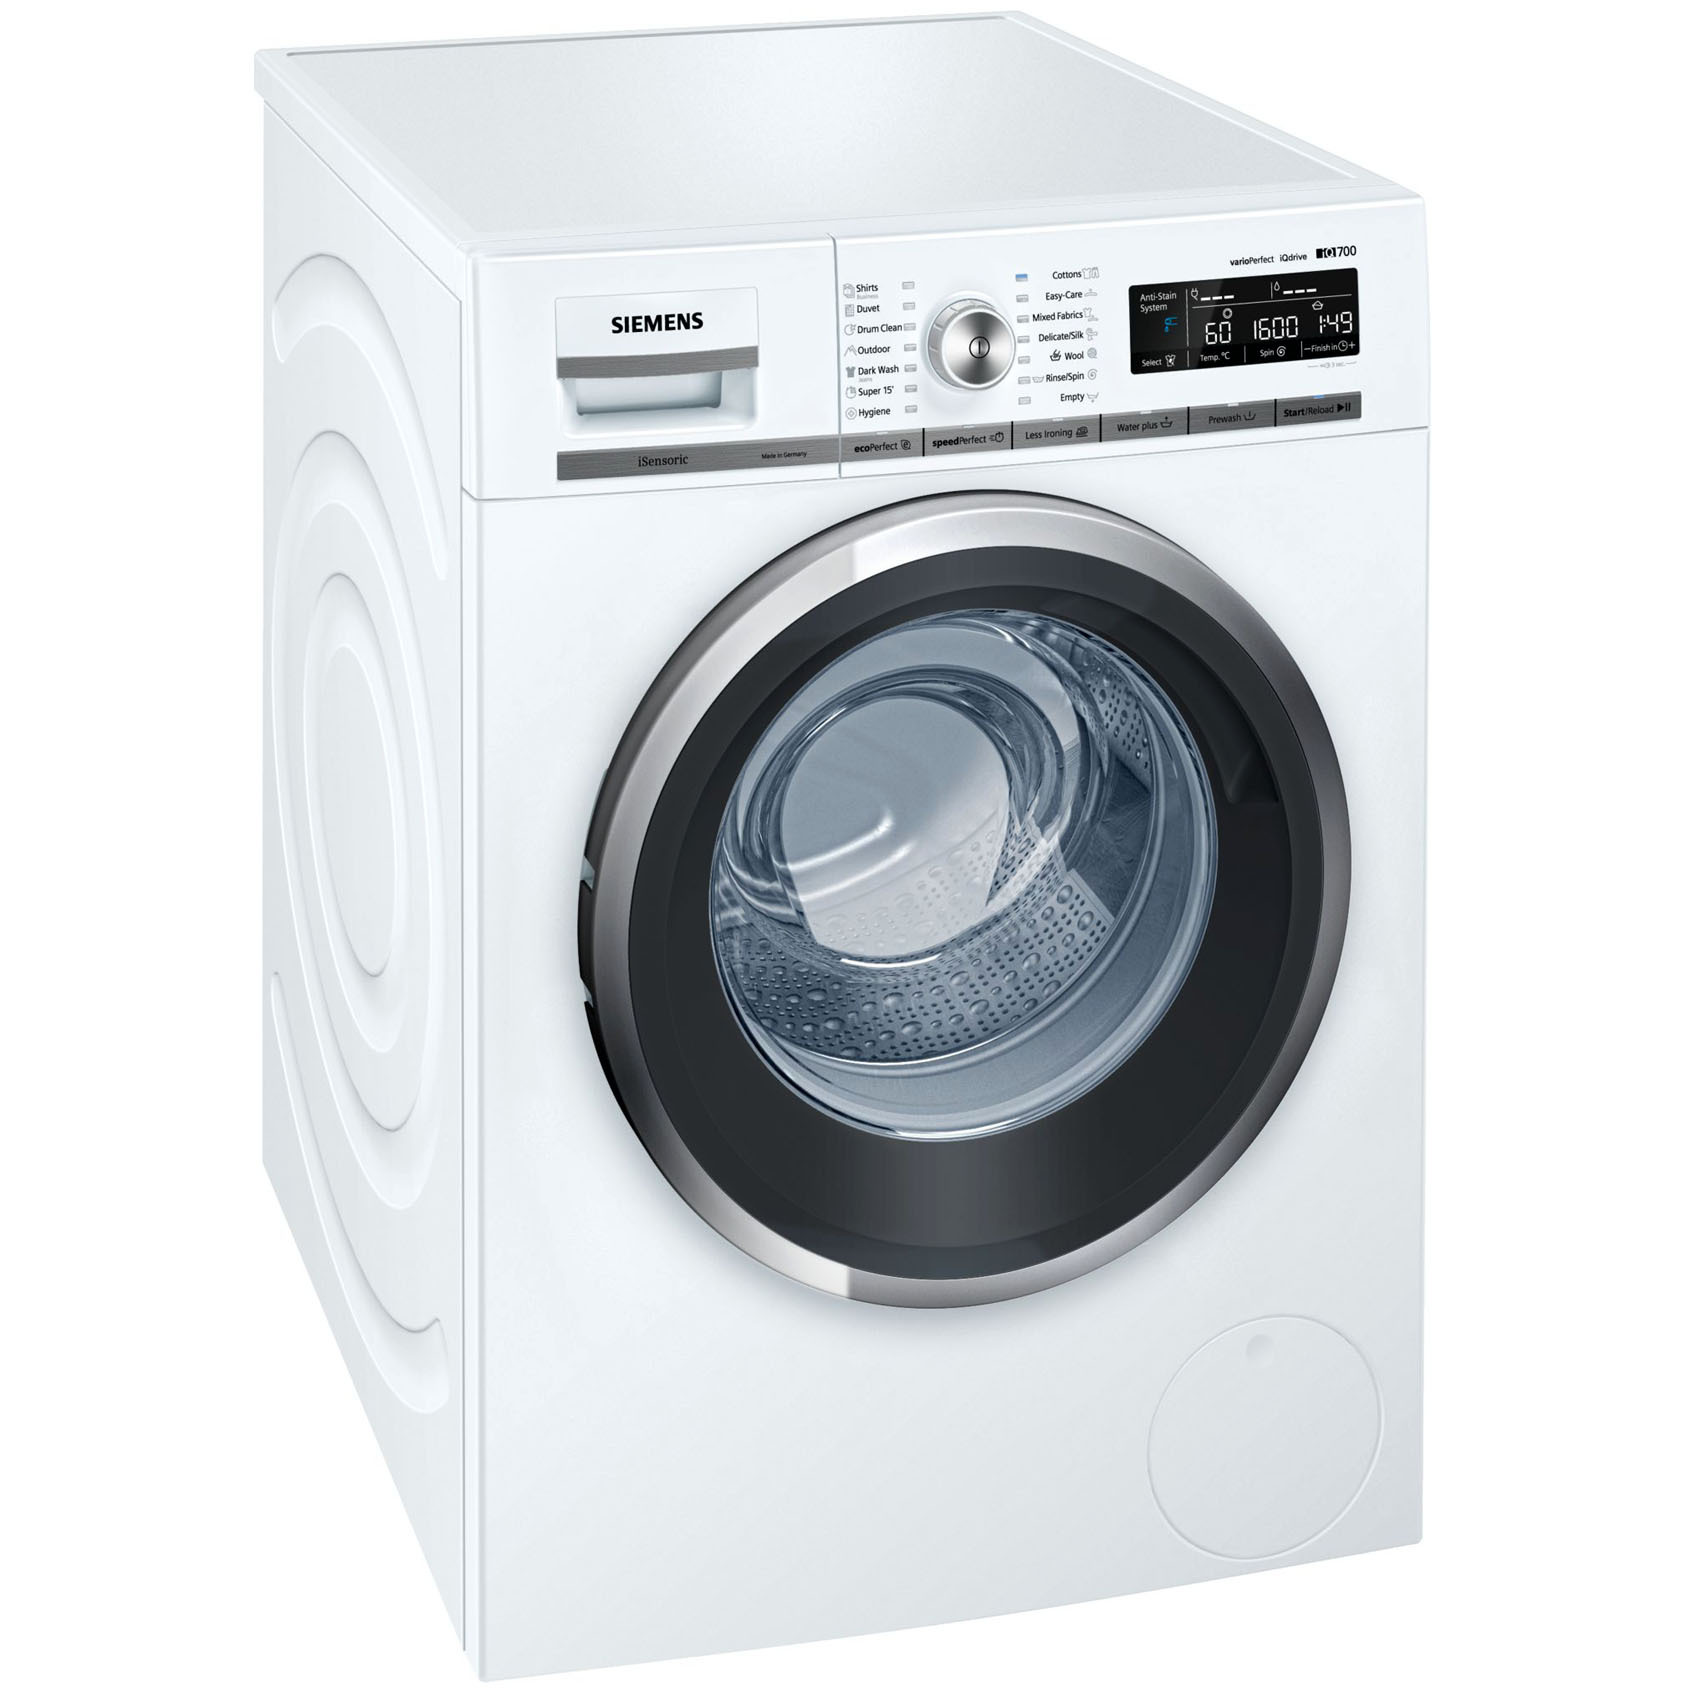 SIEMENS WASHER WM16W560GC 9KG